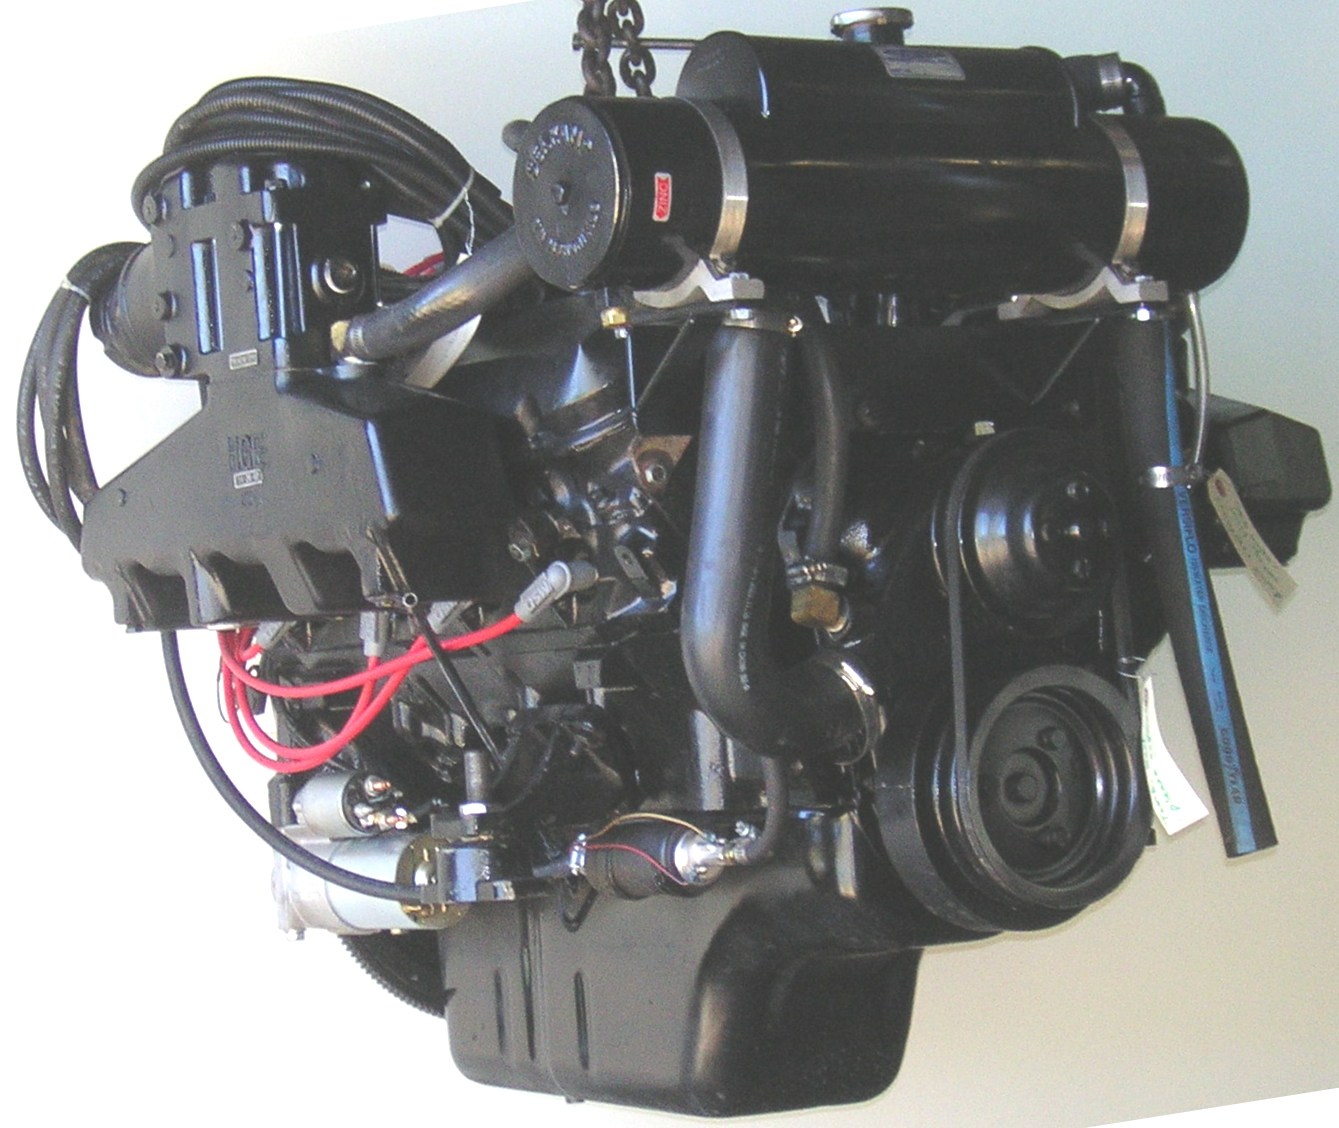 Chevy 6 5 Diesel Engine Parts Diagram Wiring Library 350 Marine Remanufactured Engines Inboard Rh Com